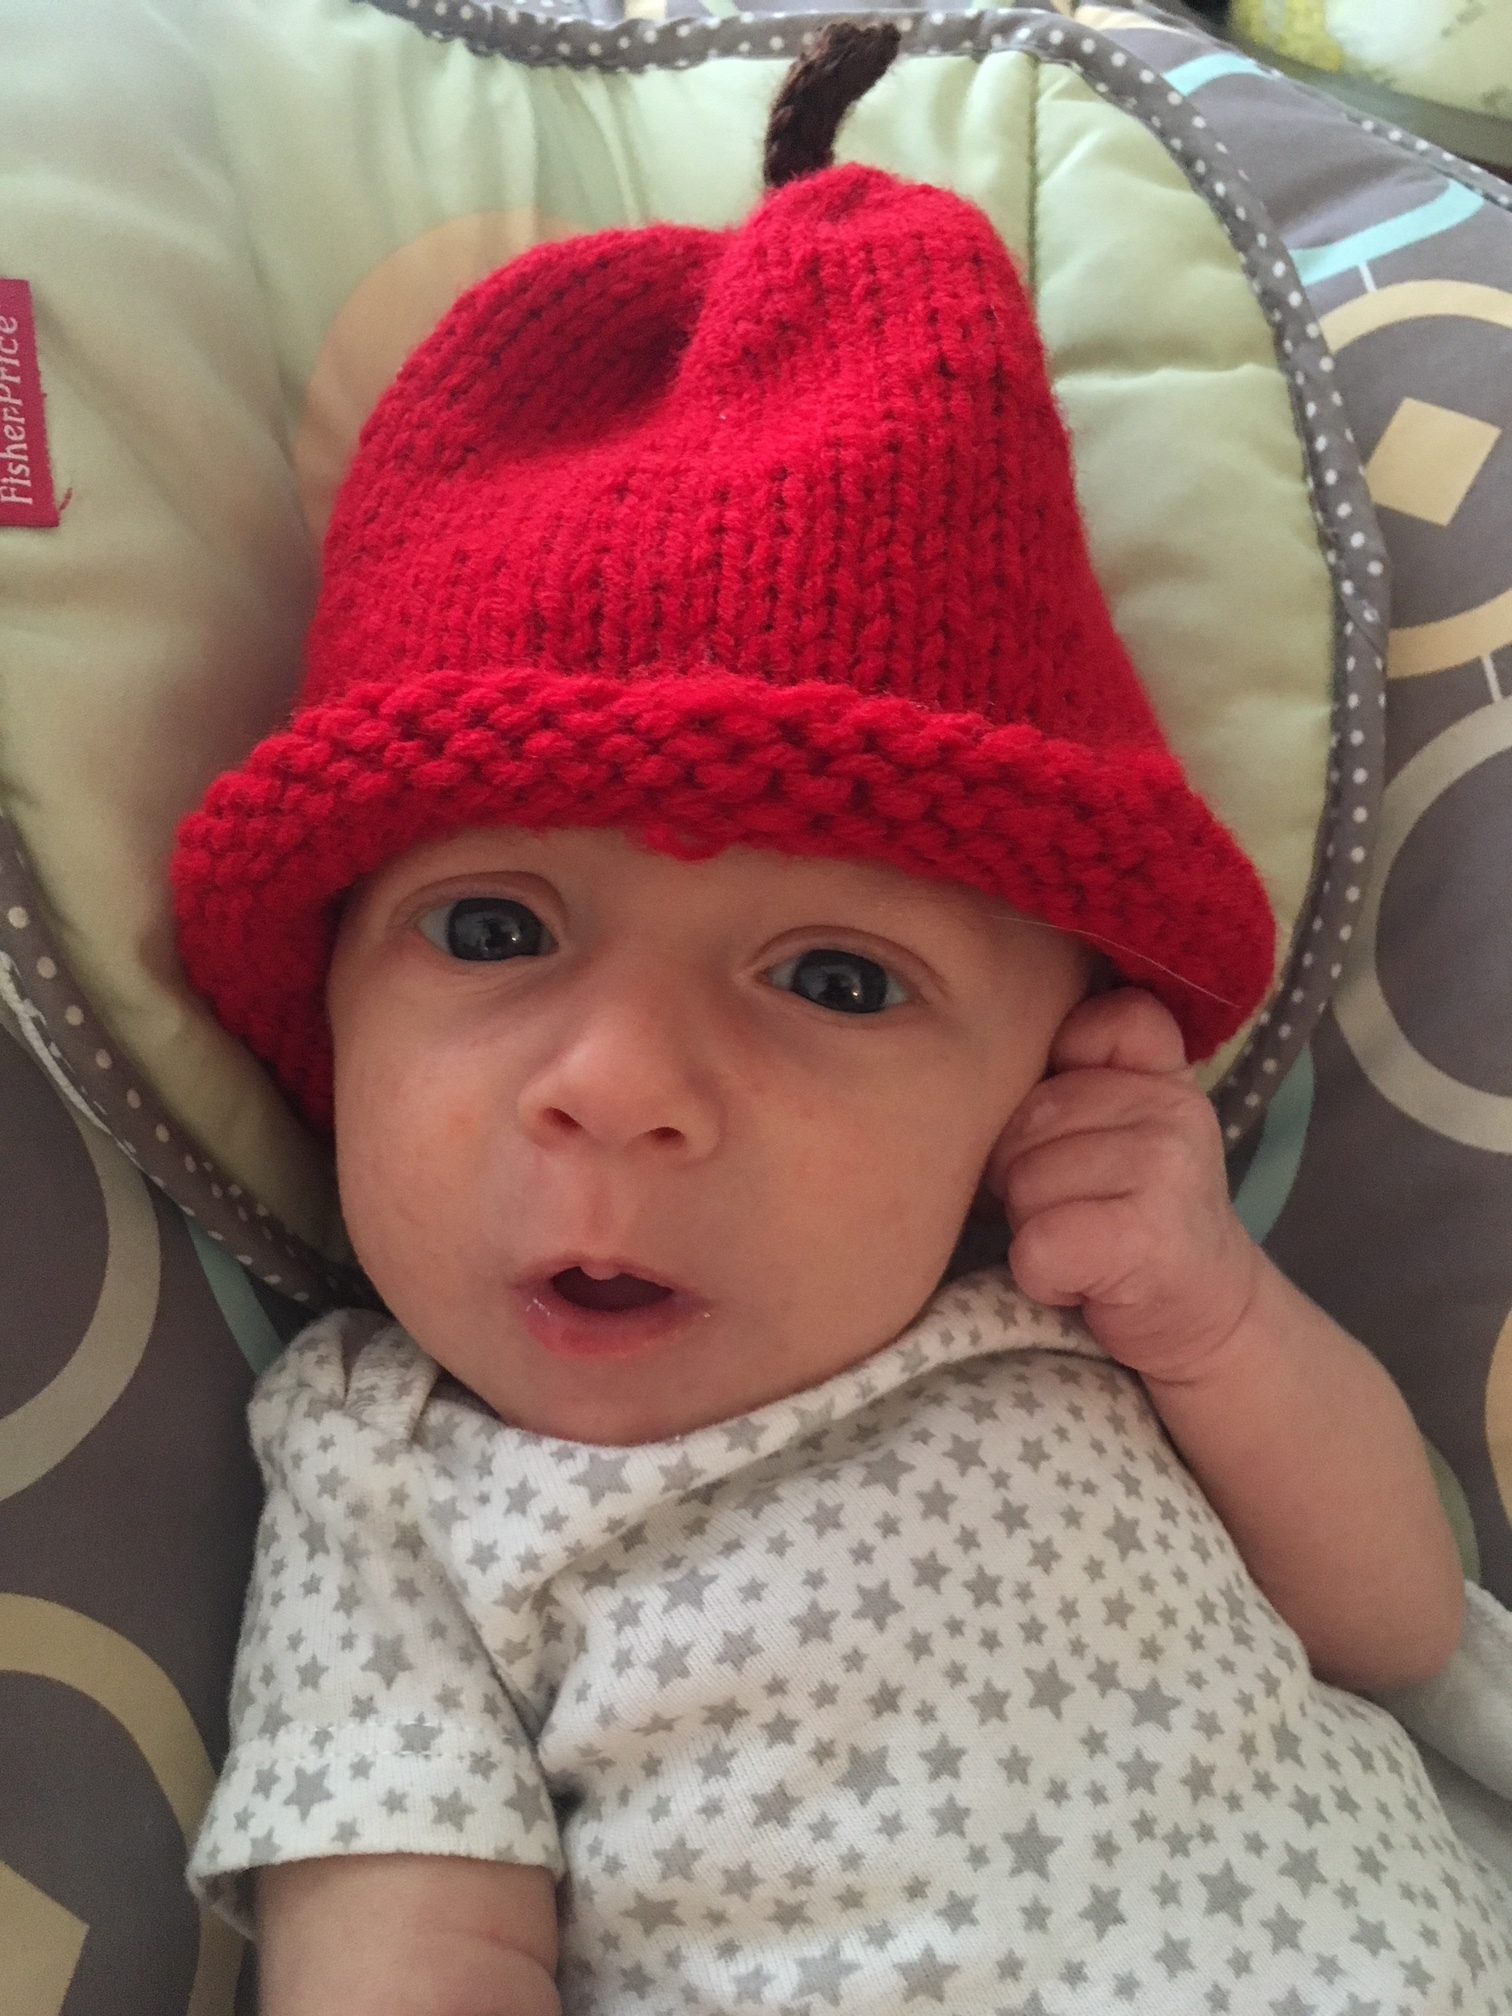 Kim LaViolette Mosteller's son, Walker in Marion's handmade apple hat... he has room to grow into it for the winter months ahead!